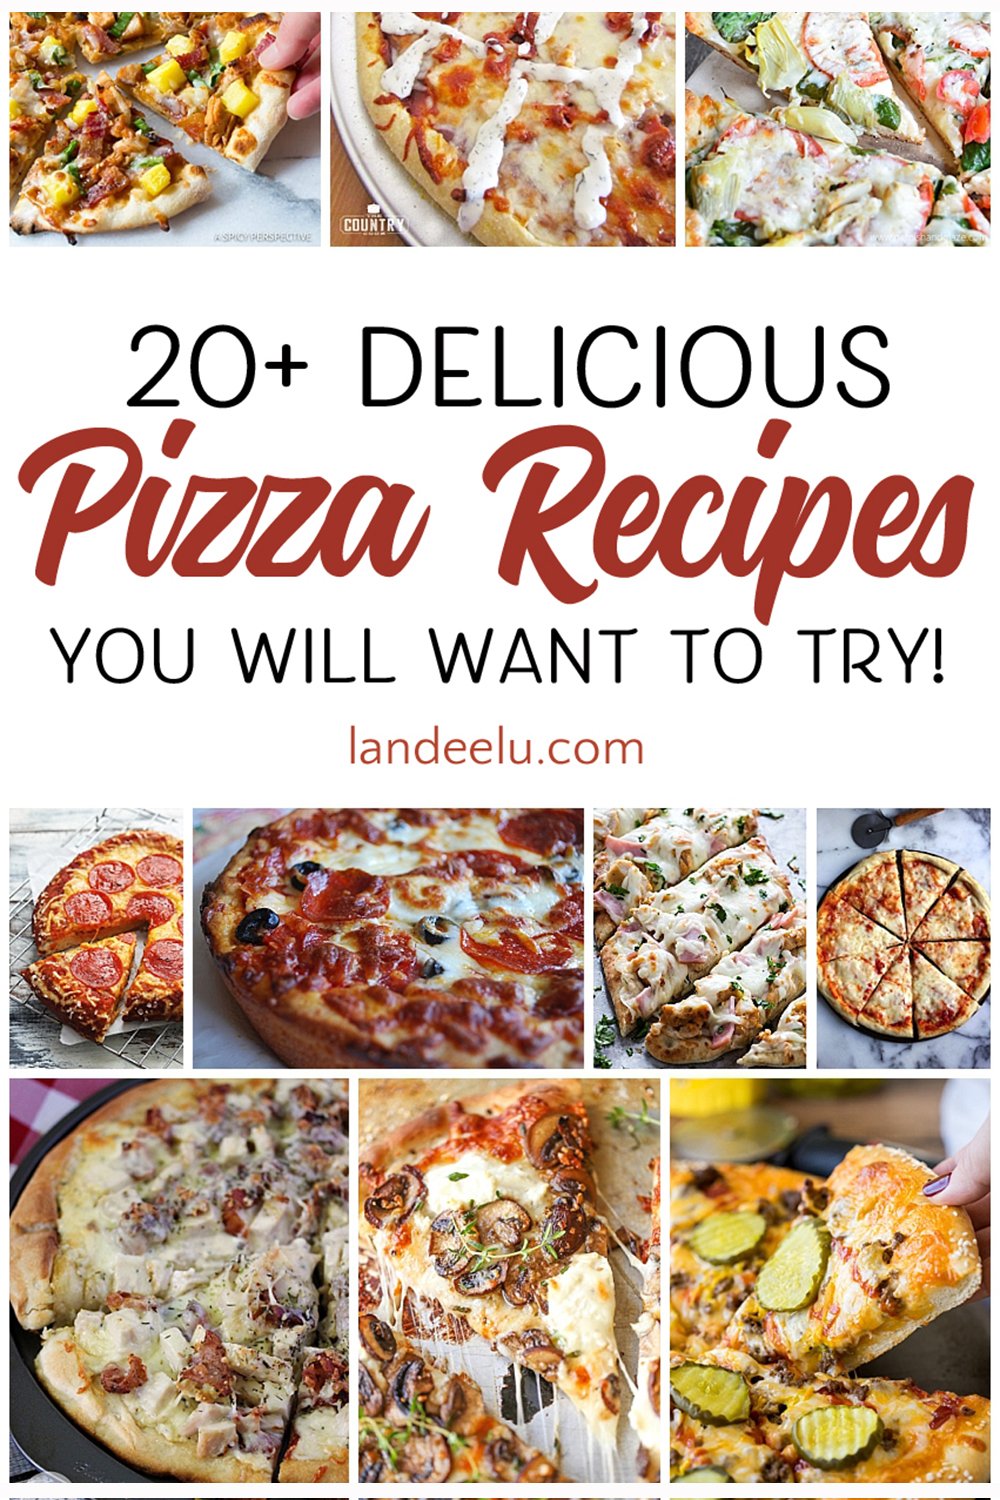 Yummy pizza recipes to try for our weekly pizza night! #pizzarecipes #homemadepizzas #dinnerrecipes #dinnerideas